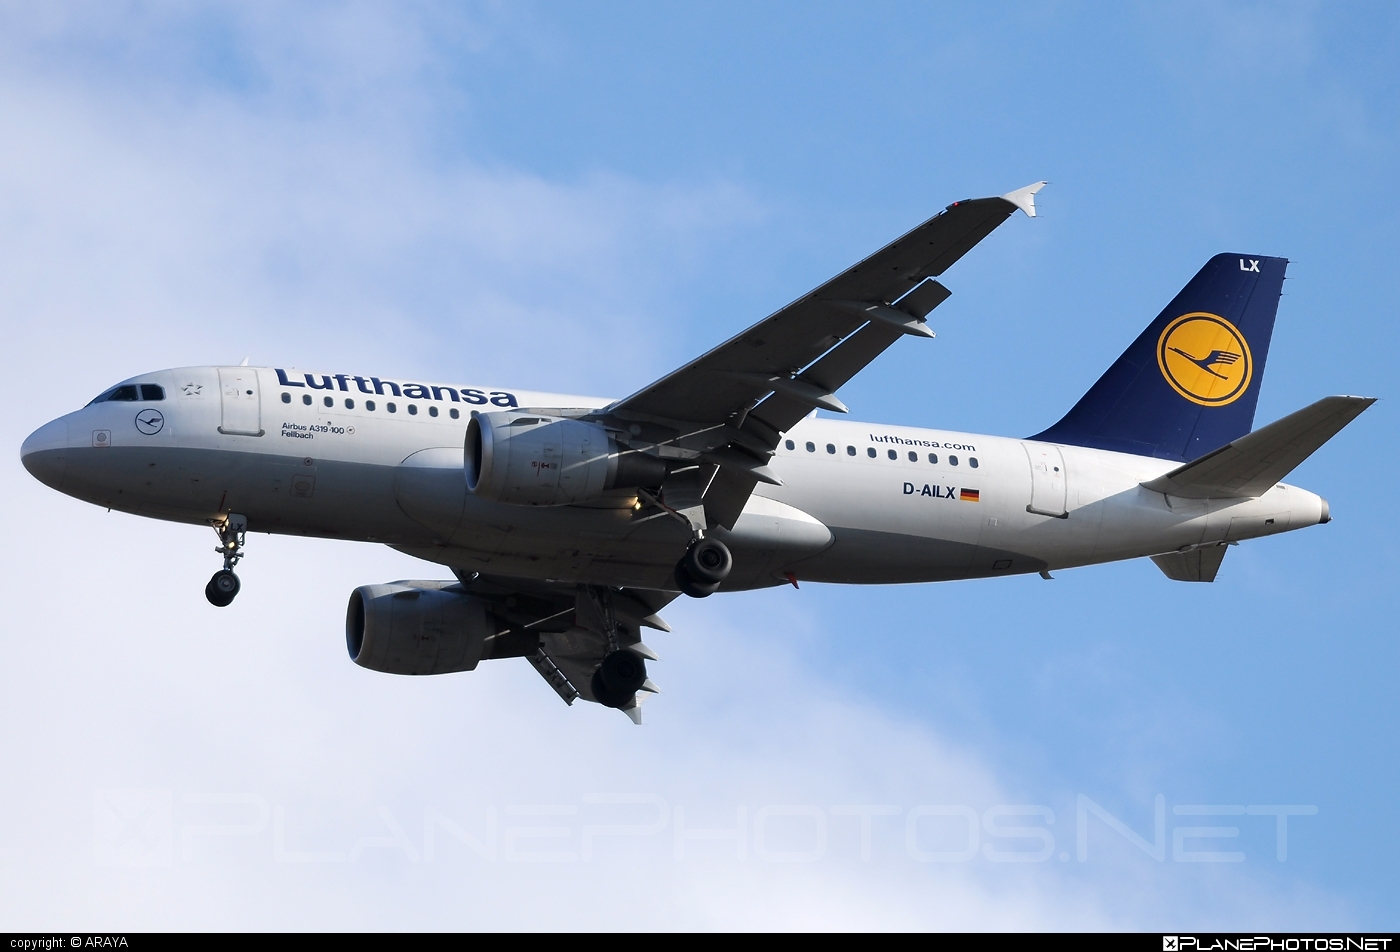 Airbus A319-114 - D-AILX operated by Lufthansa #a319 #a320family #airbus #airbus319 #lufthansa